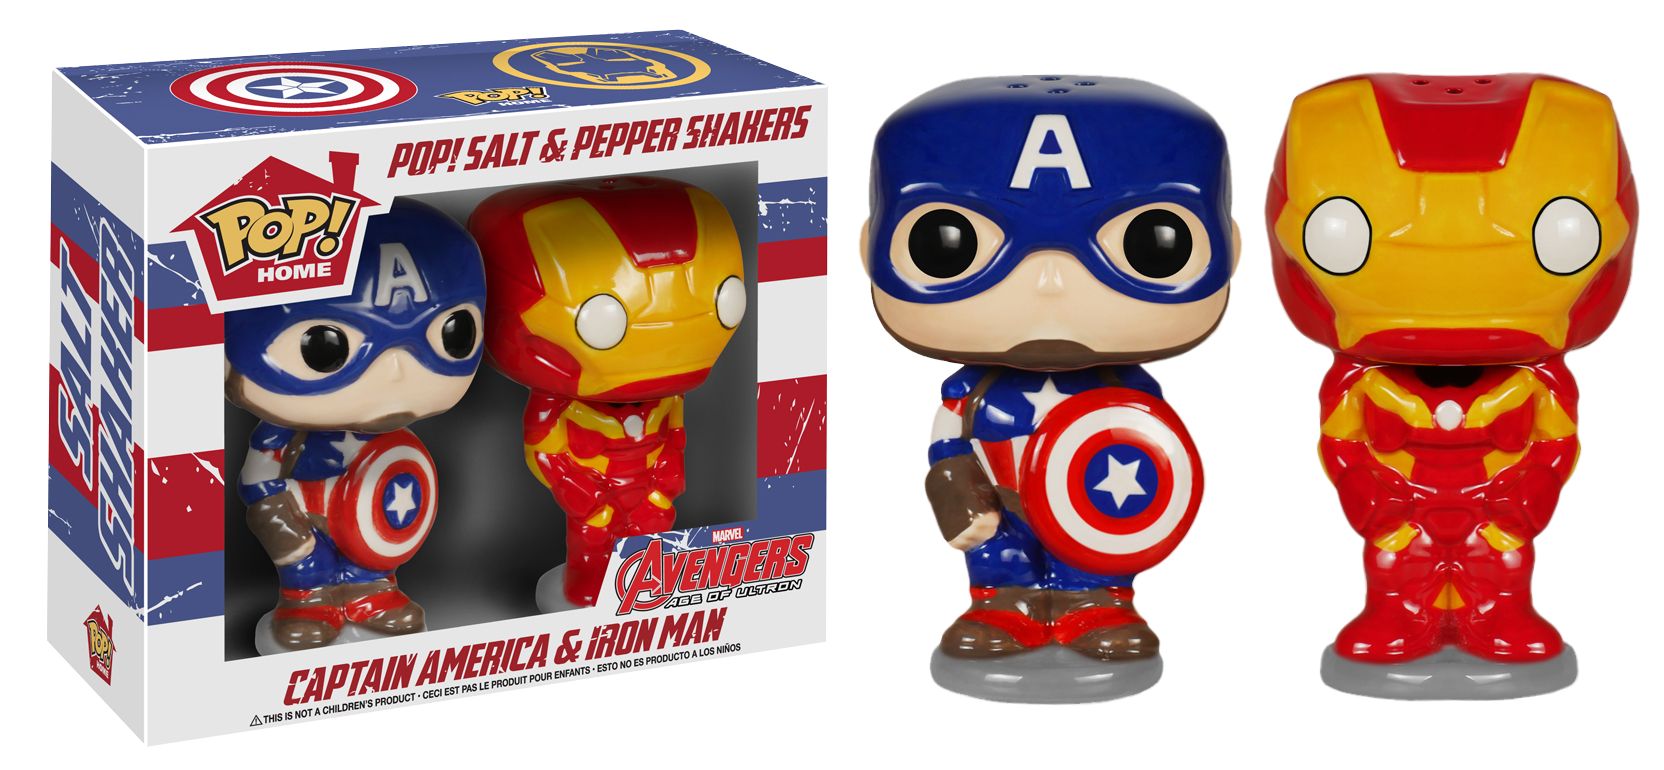 Funko Pop: Age of Ultron - Captain America & Iron Man Salt & Pepper Shakers imagine